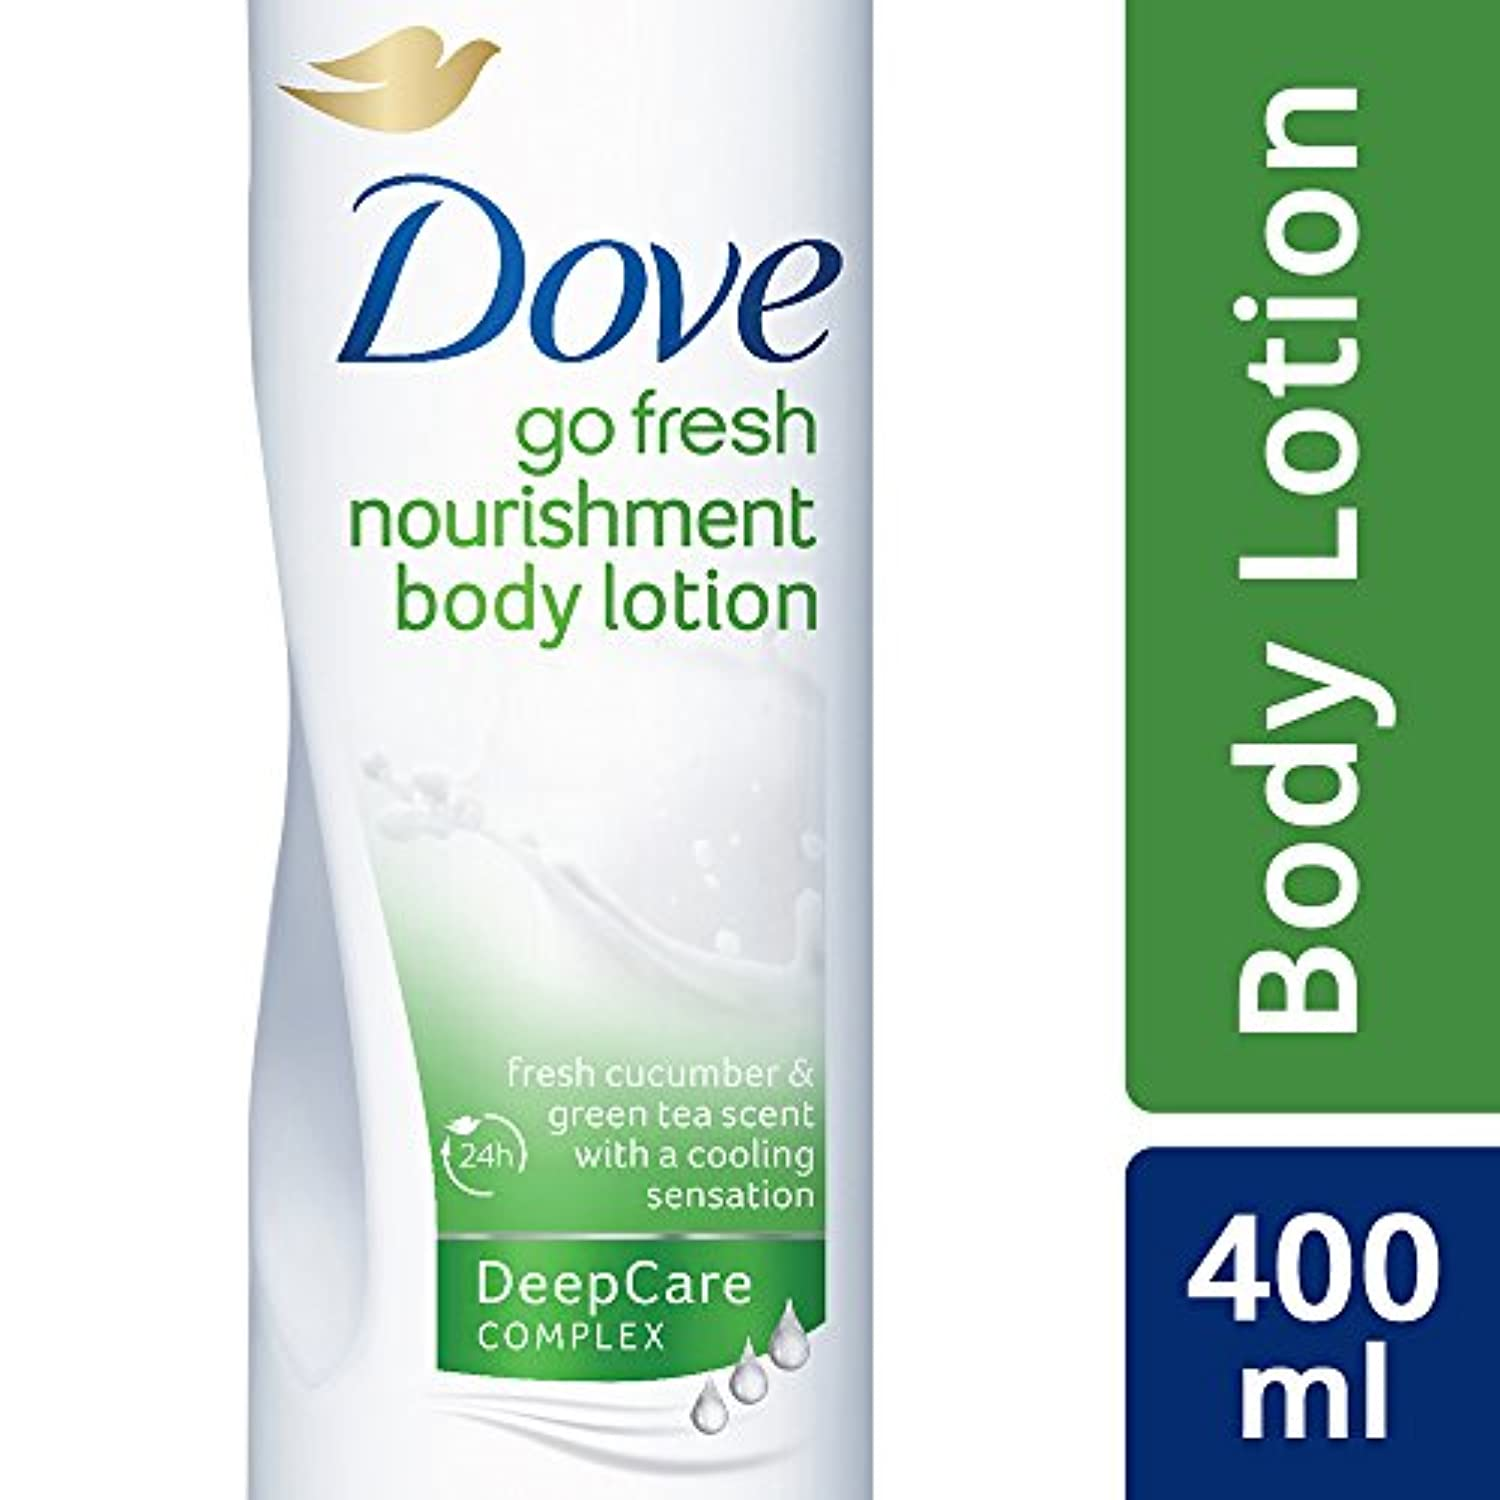 Dove Go Fresh Body Lotion, 400 ml